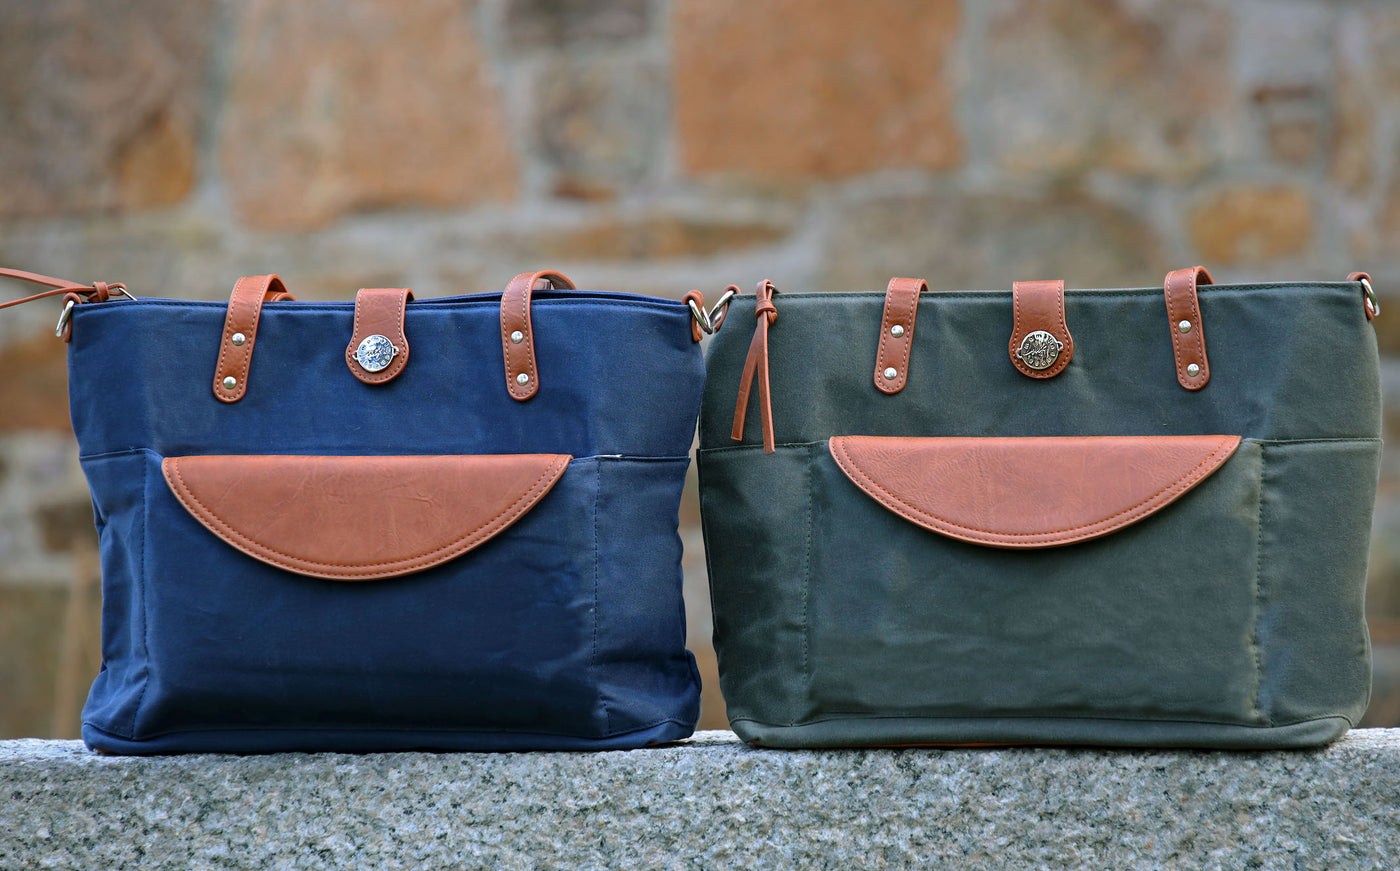 Group picture of navy blue & forest green waxed canvas totes with brown vegan leather accents sitting on a wall.